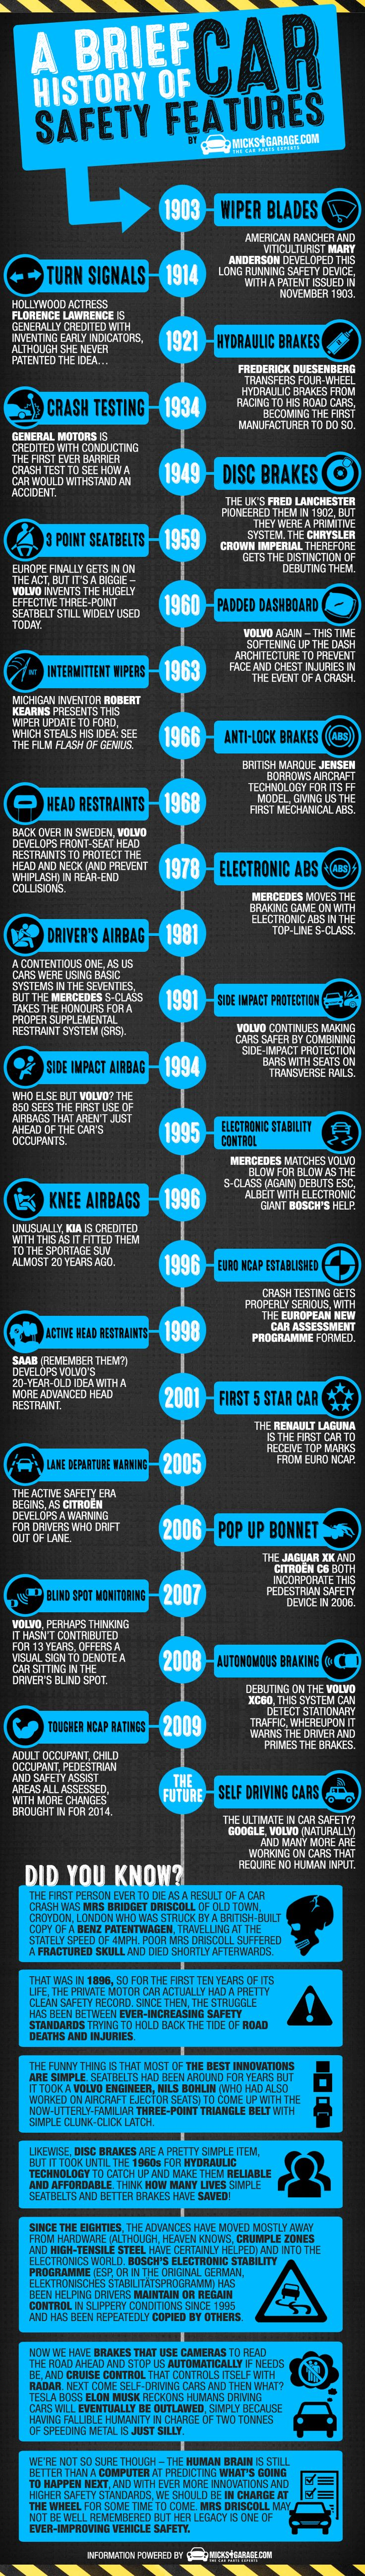 Car Safety Features infographic- Can you believe that wiper blades were invented before turn signals?